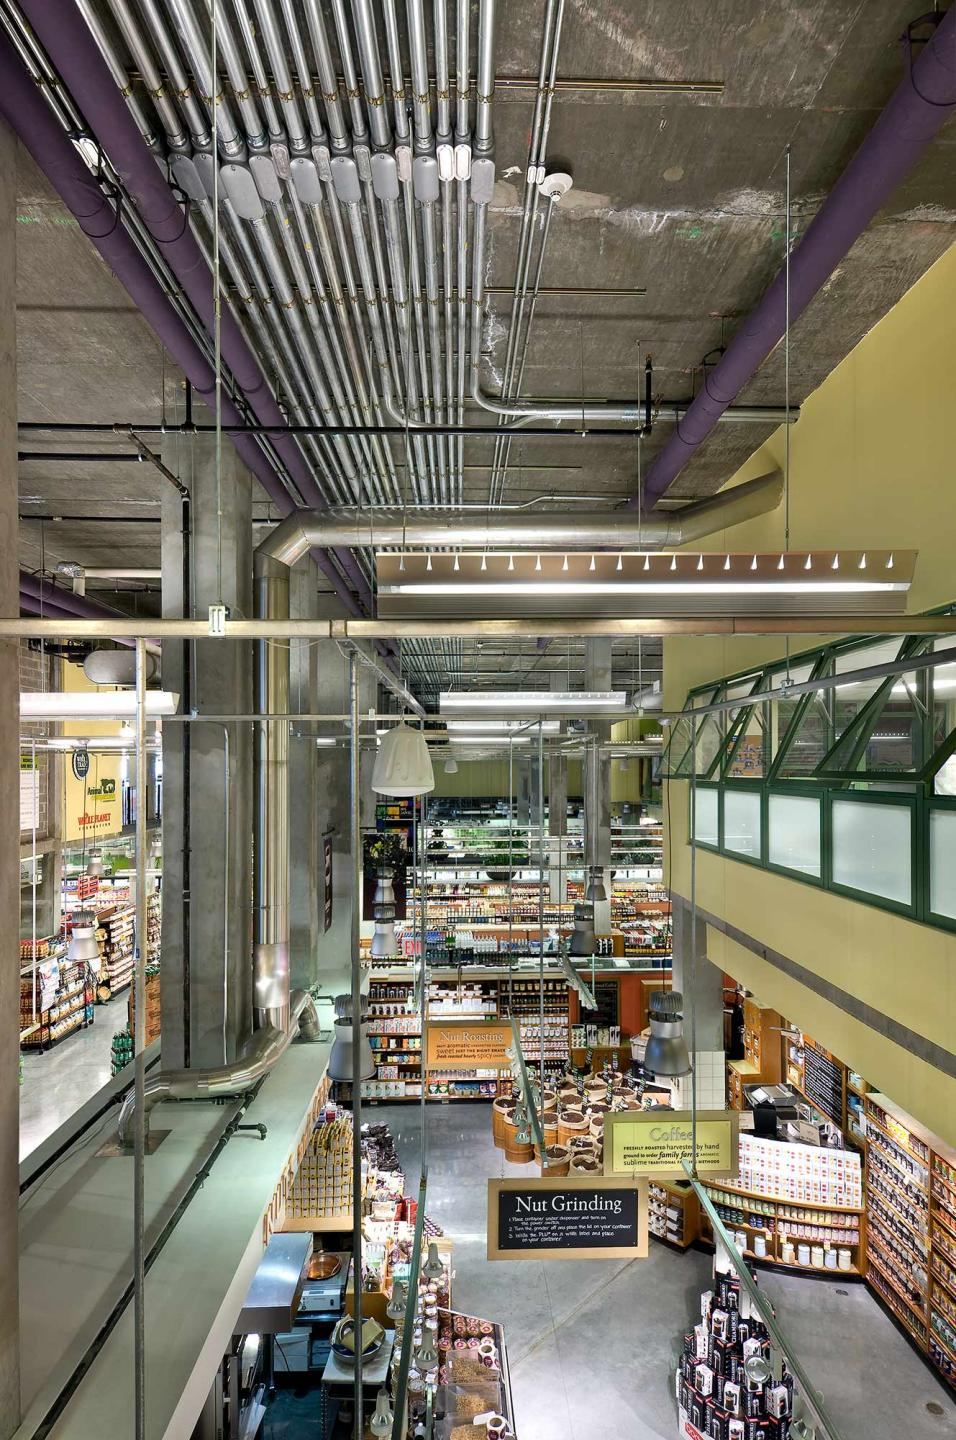 Whole Foods Market located on Houston St., NYC with interior design by SBLM in NYC and Bottinogrund in Austin, Texas.  Client requested to see conduit piping in a wide angle view. : Whole Foods Market : New York NY Architectural Photographer | Interior and Exterior